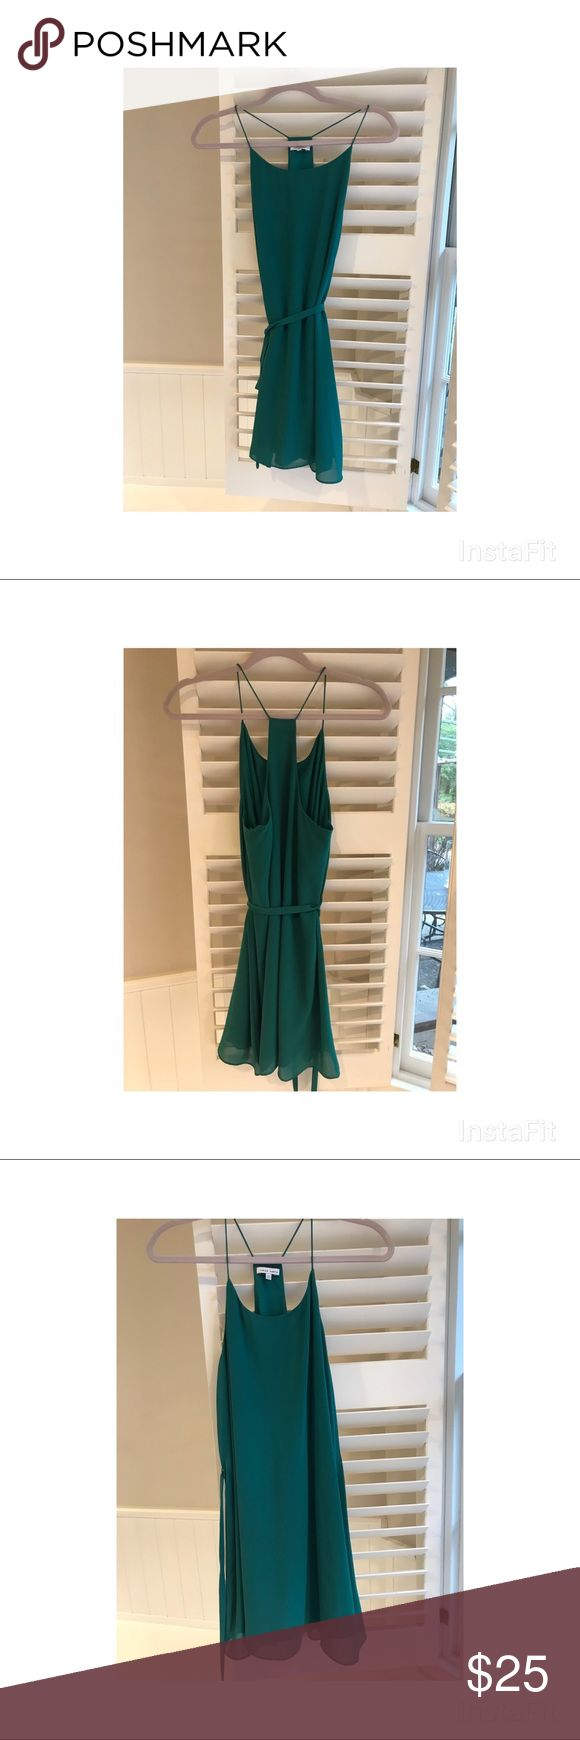 Green Dress Deep sea green. Ties around the waist for a more form fitting fit.  Has slip underneath. Perfect for date night or girls night out! It is on the shorter side - I wore flats with it. Worn once! Naked Zebra Dresses Mini